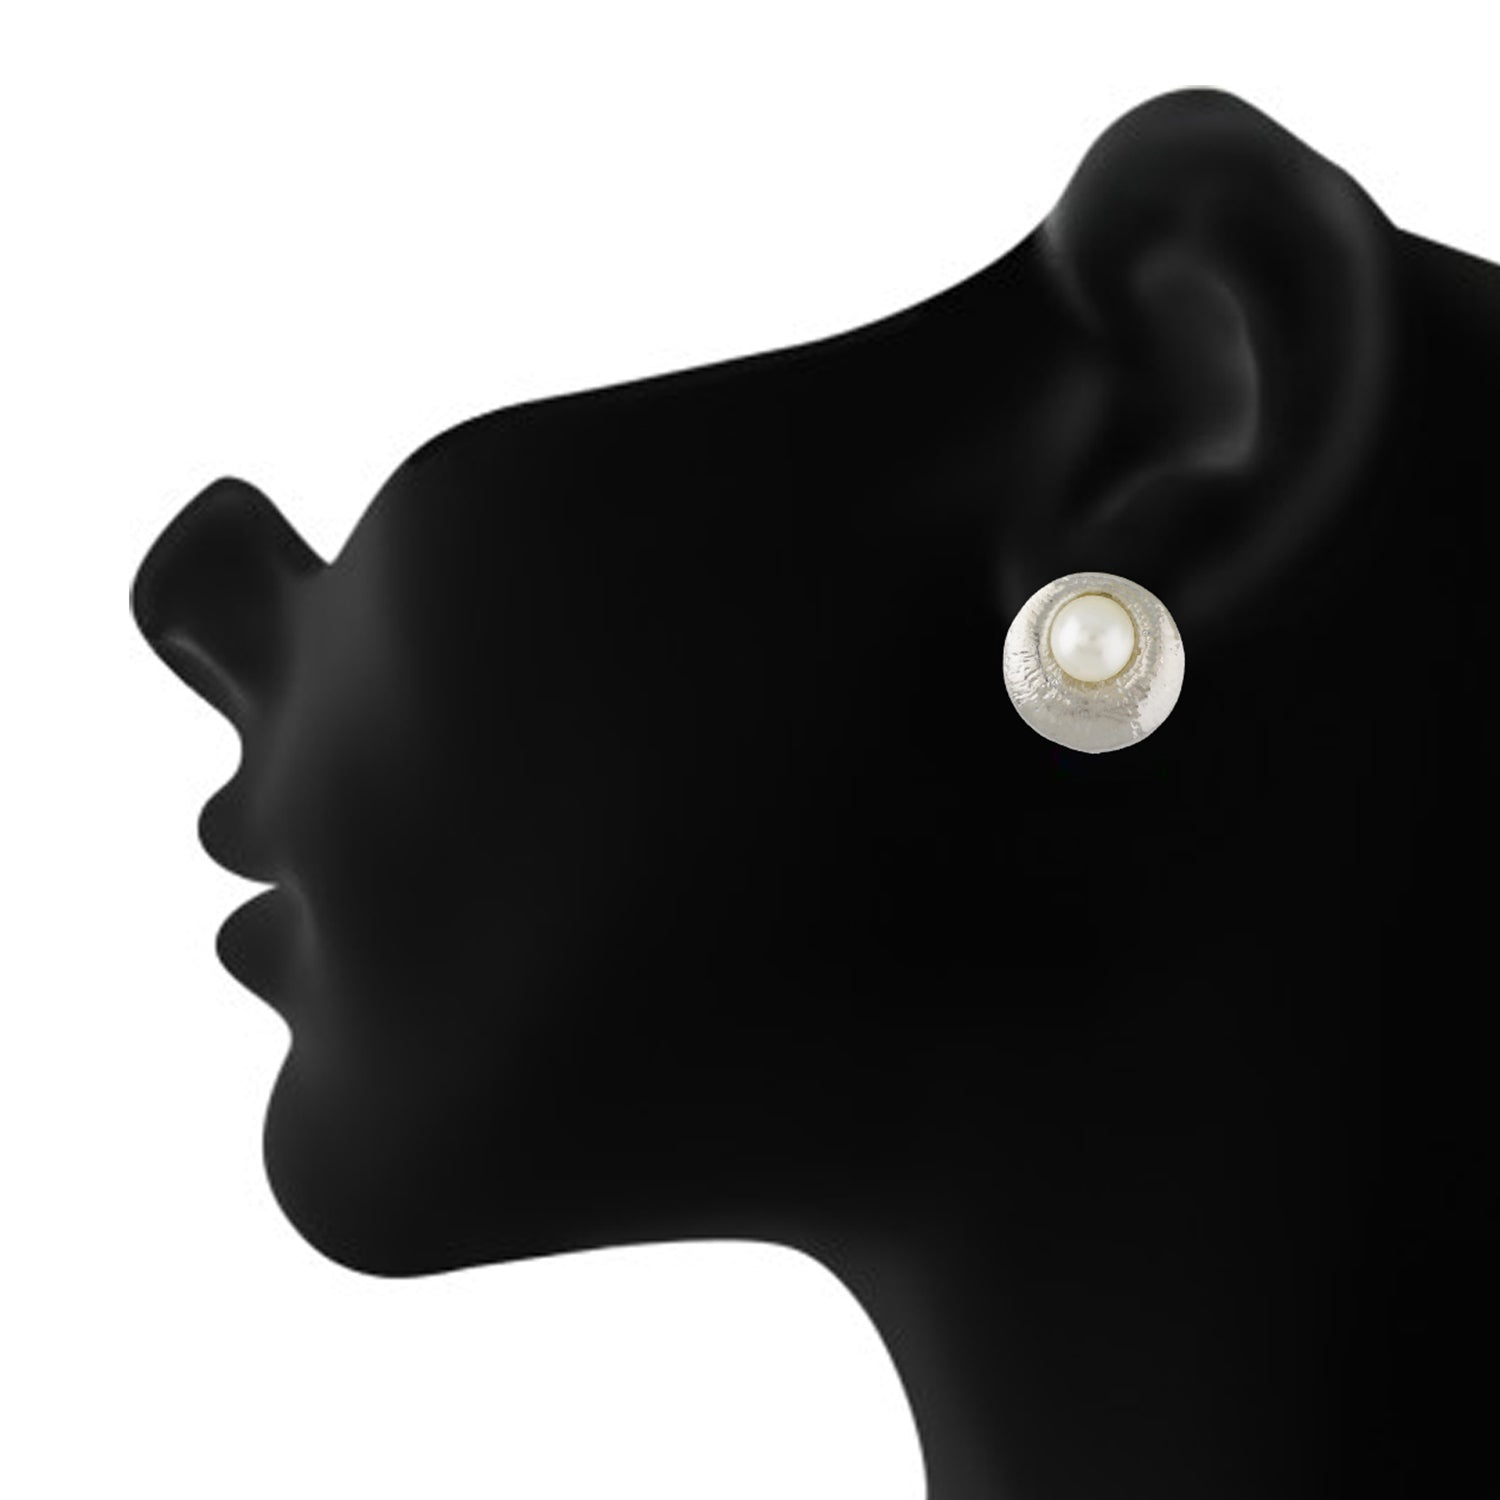 Trendy Silver Colour Round Shape Alloy Clip On Earrings for Girls with Non Pierced Ears